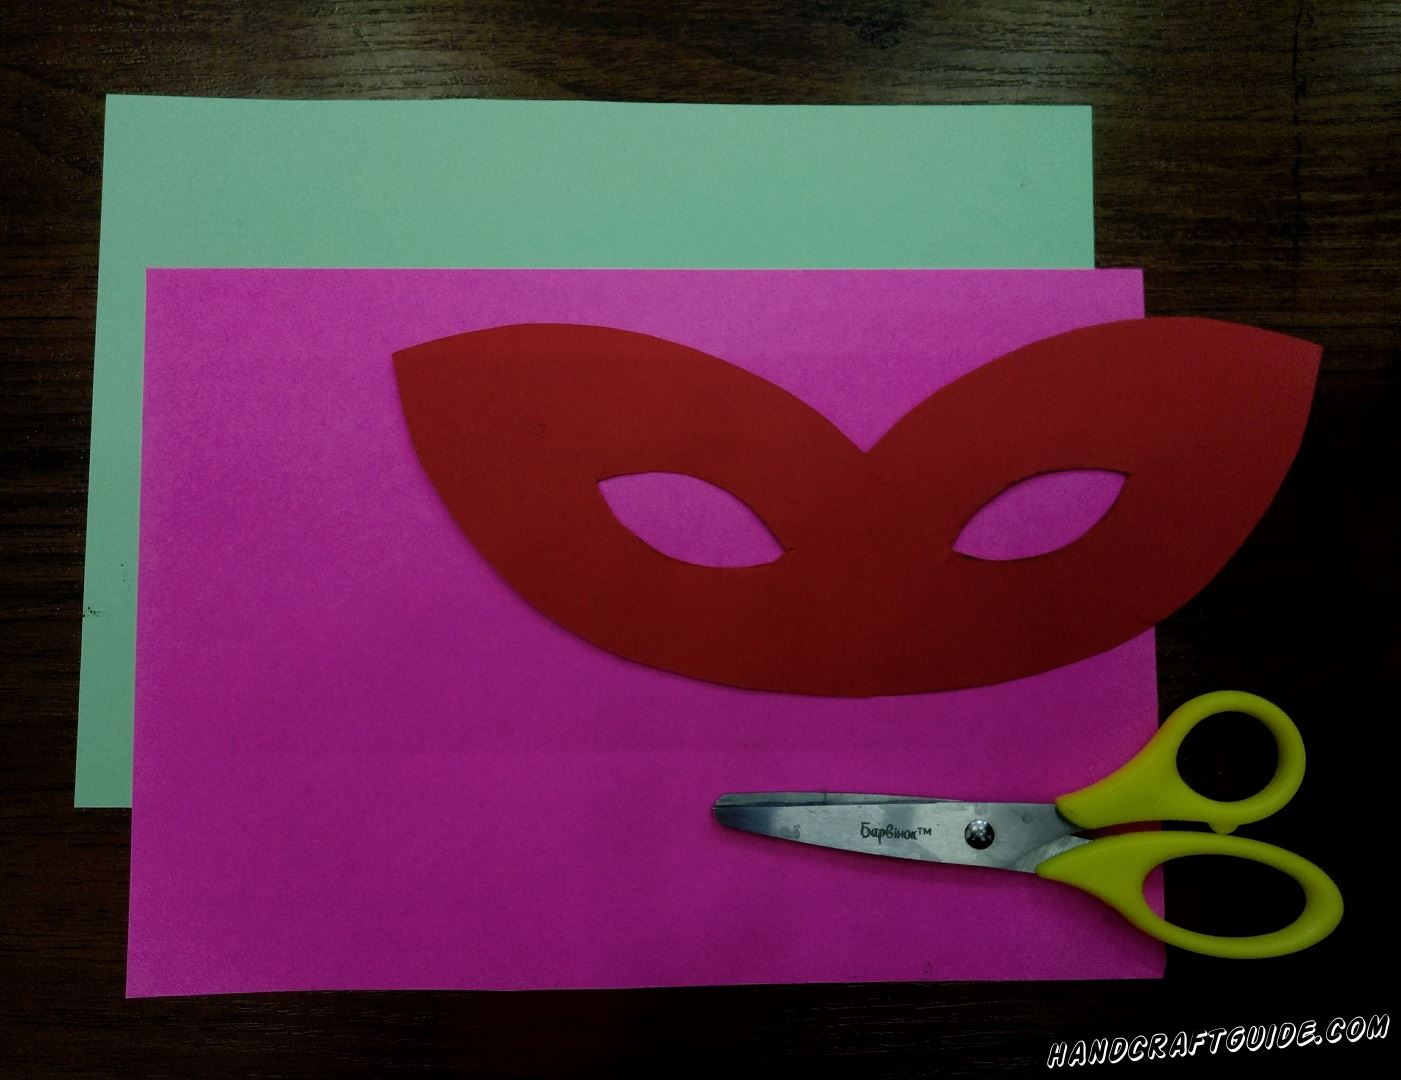 First, take red paper and cut out the basis of the mask, do not forget to cut holes for the eyes, so you can see when you wear it.